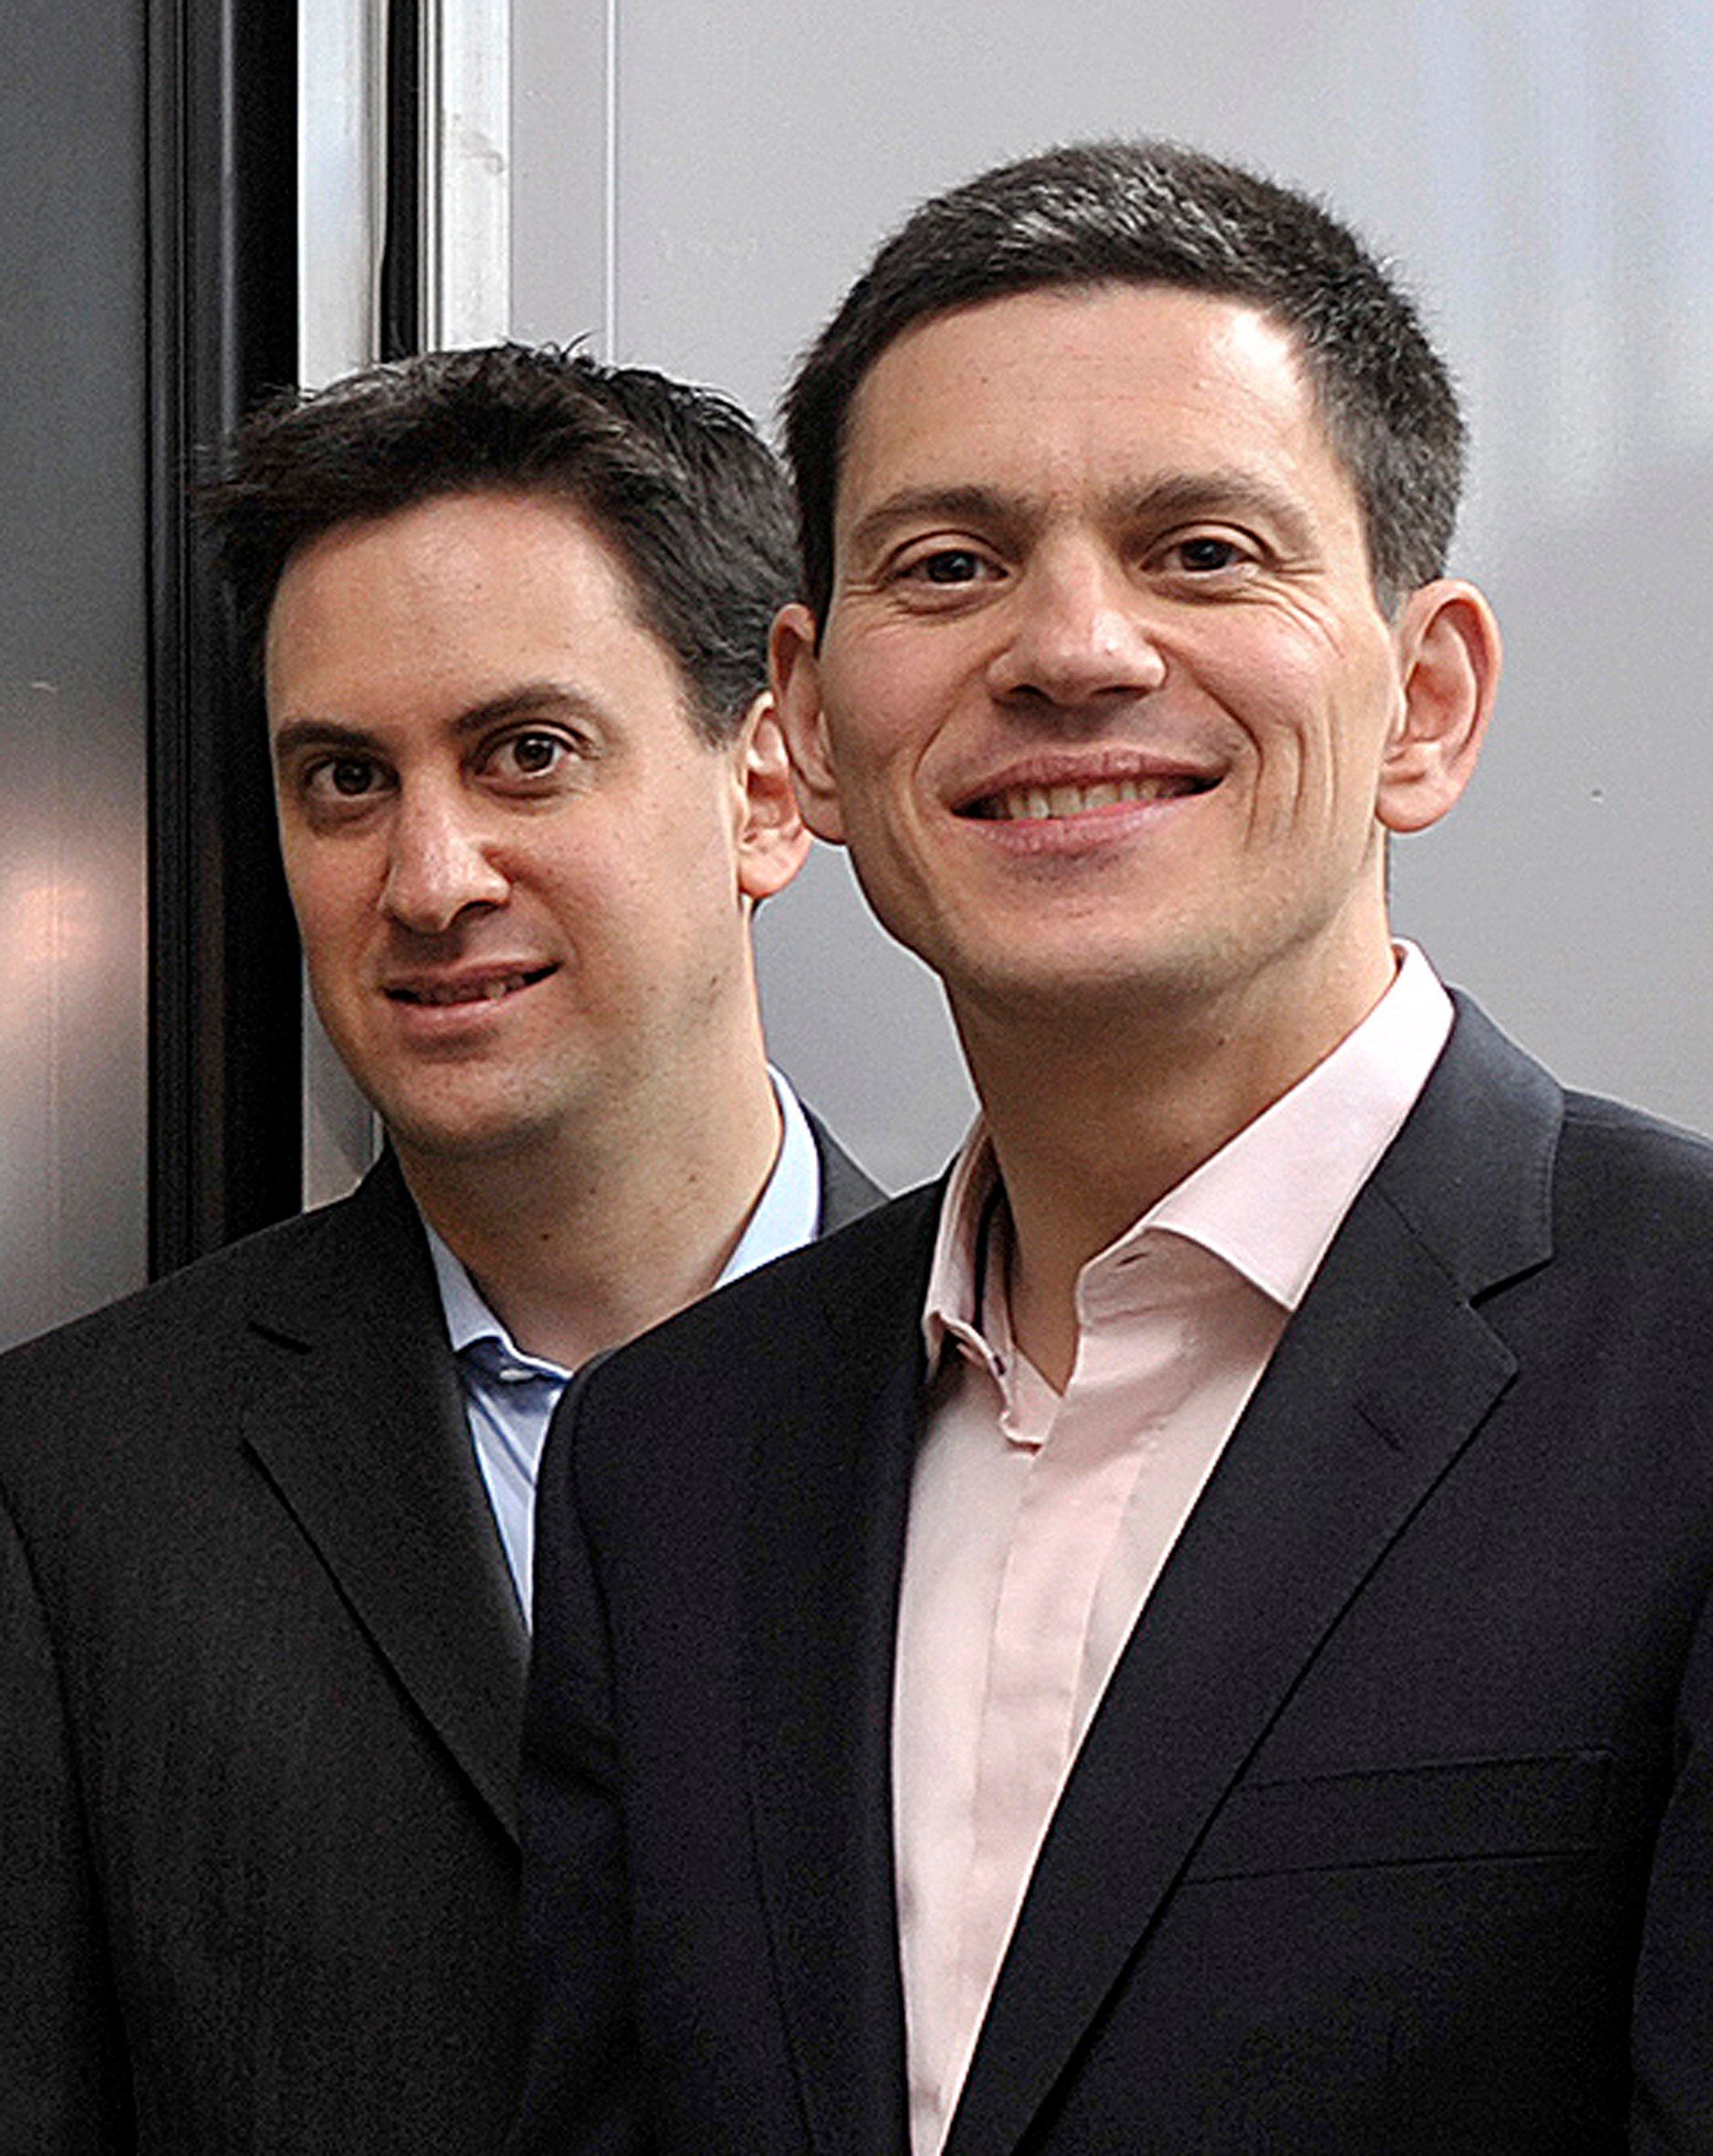 The Miliband Brothers Speak Publicly For First Time In Seven Years In Awkward